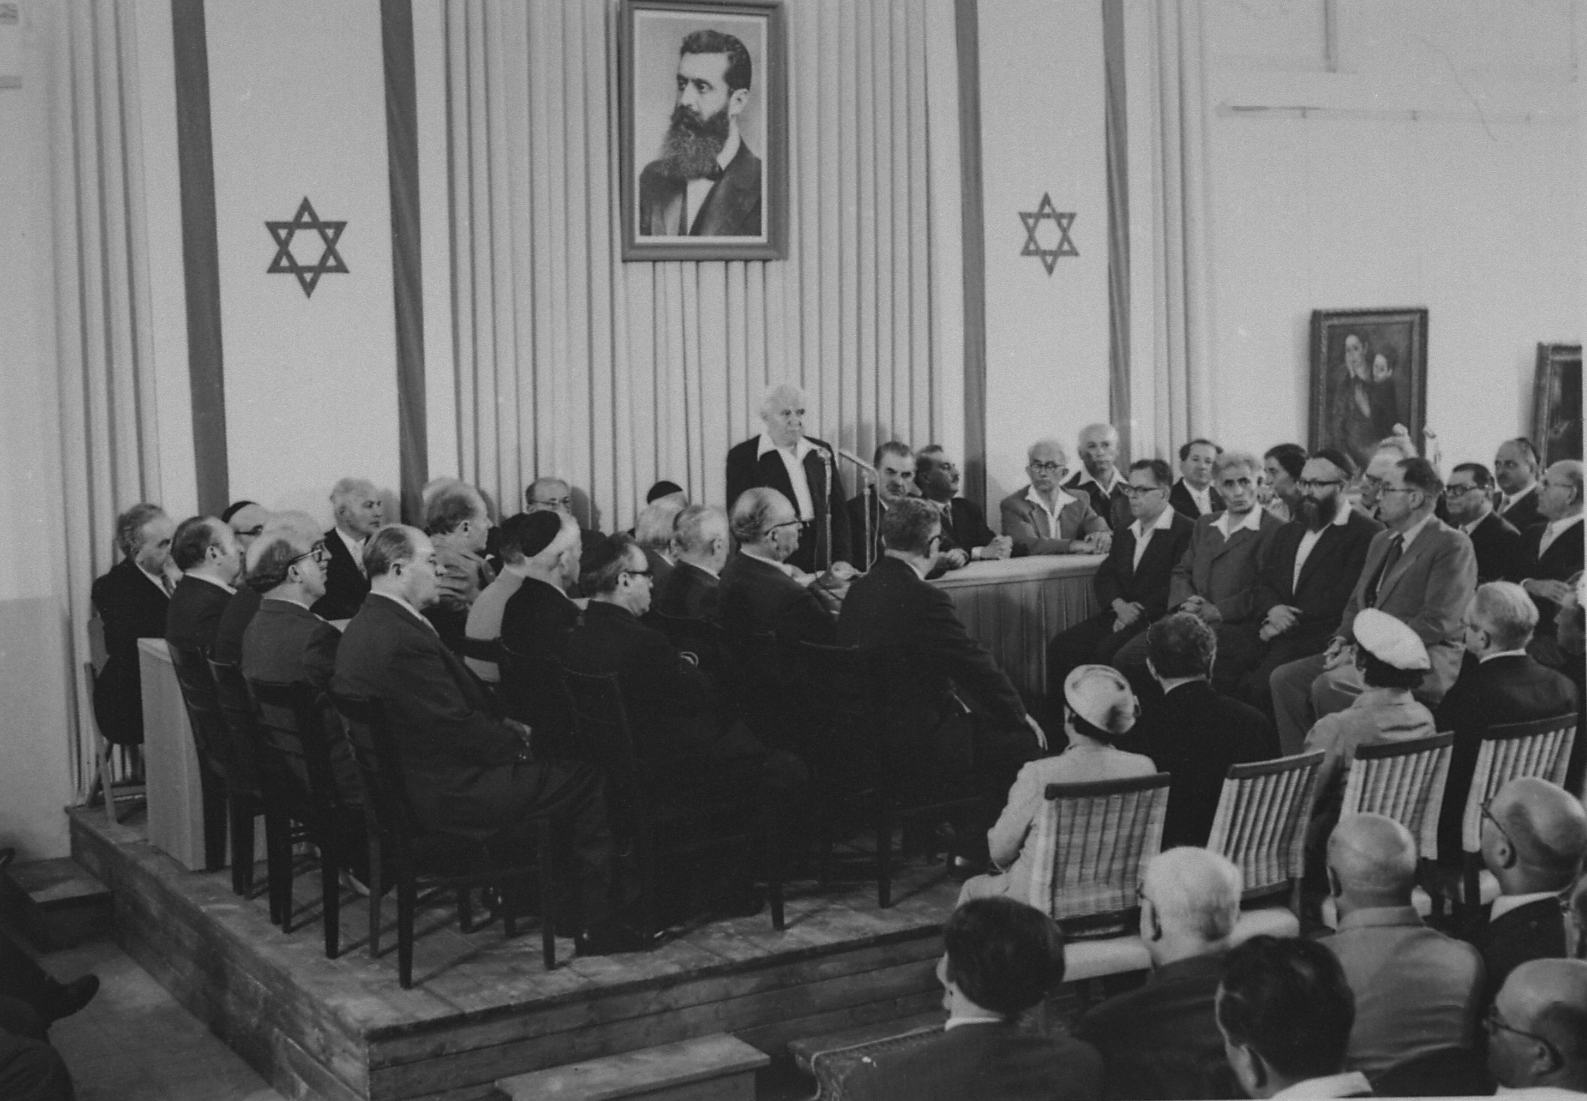 David Ben-Gurion proclaims Israel's independence on May 14, 1949